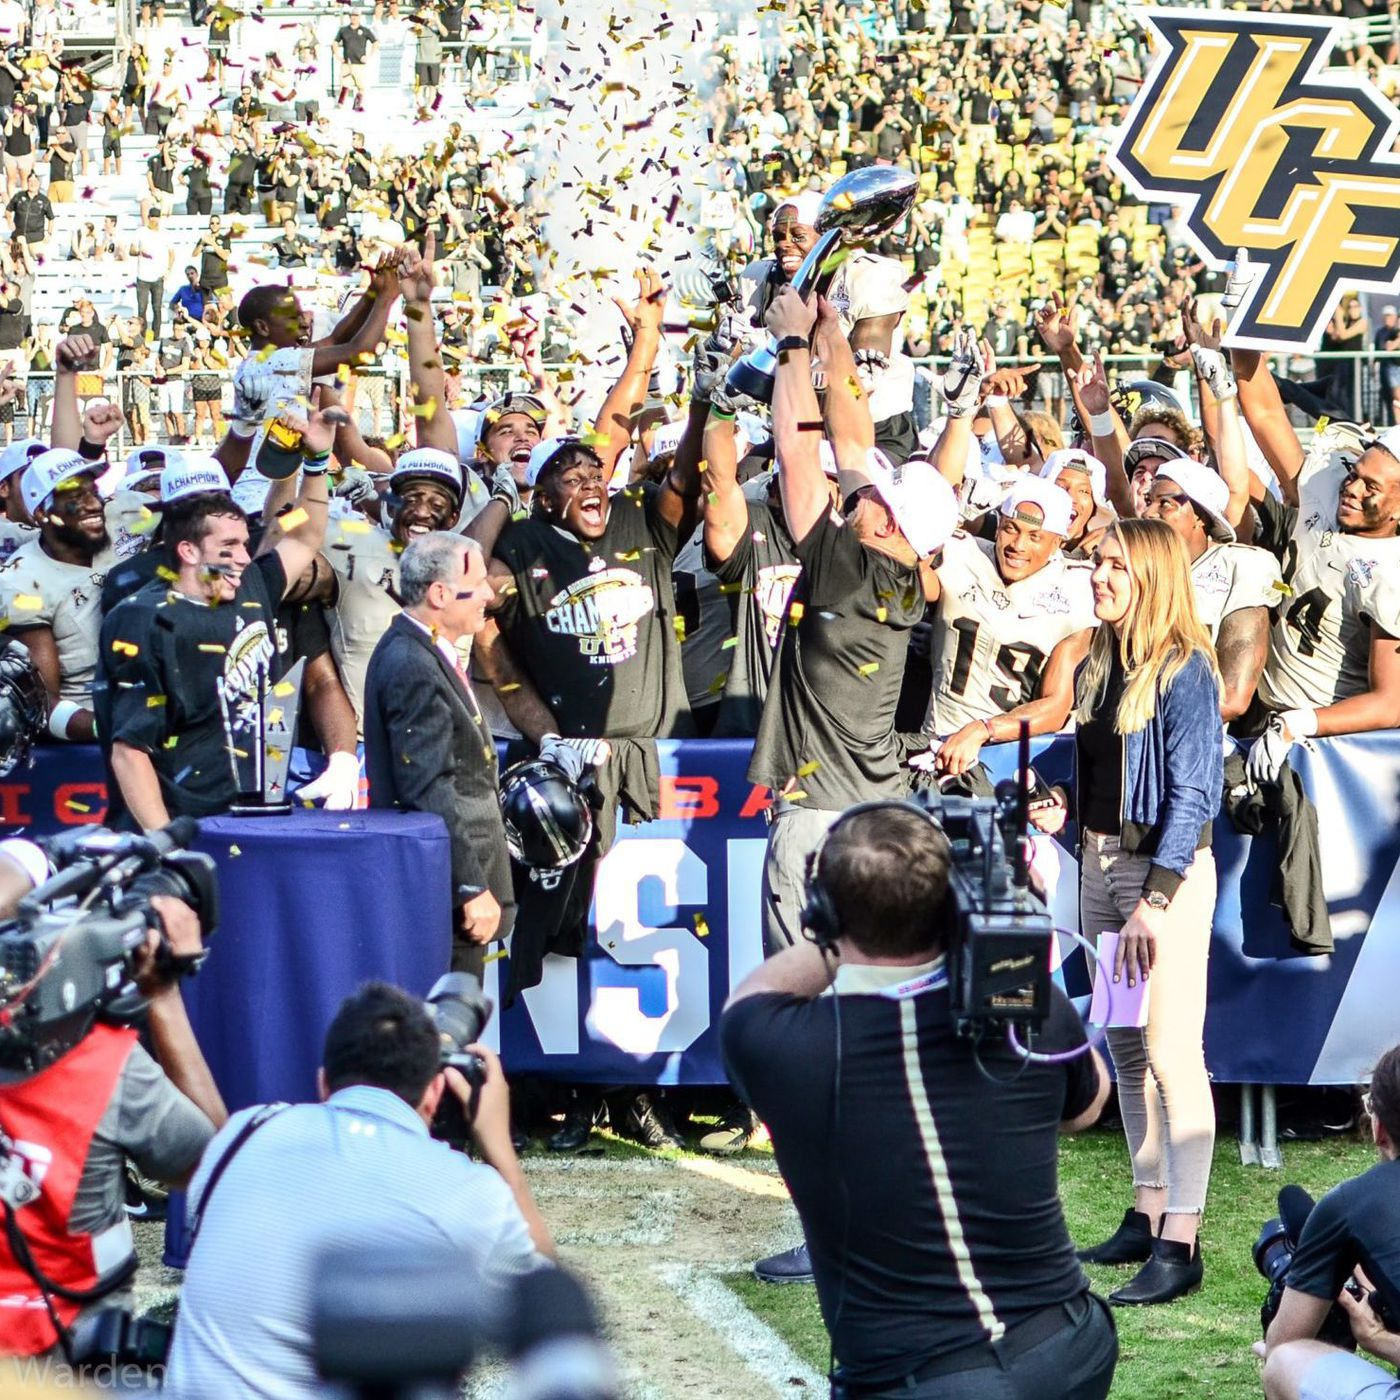 On Media Rights, UCF and The American Are in Better Position